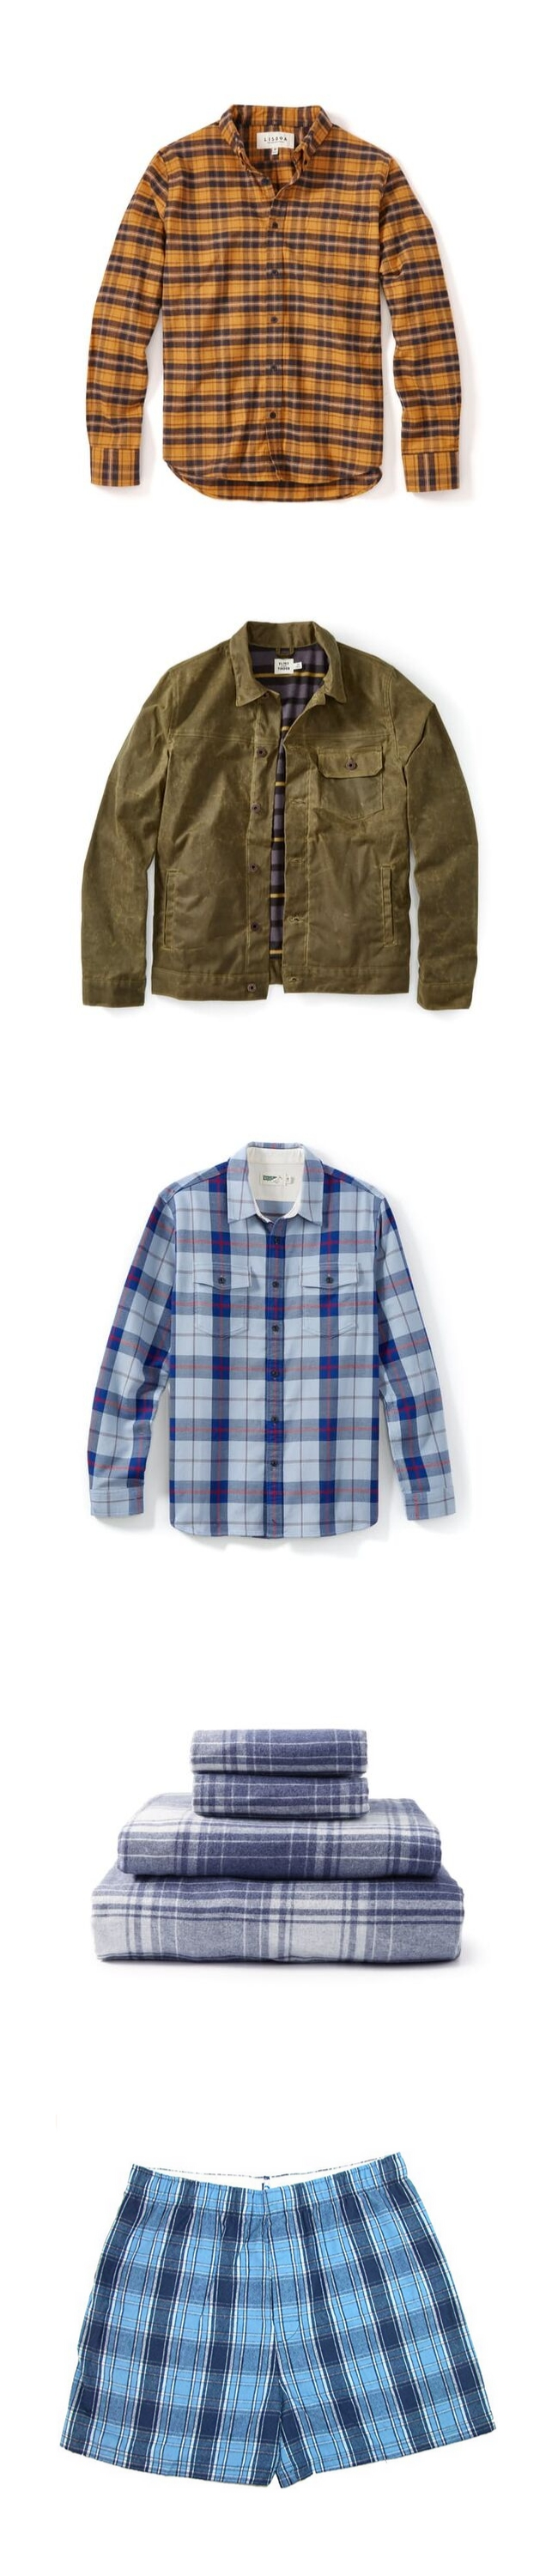 Steal This Look Flannel 2